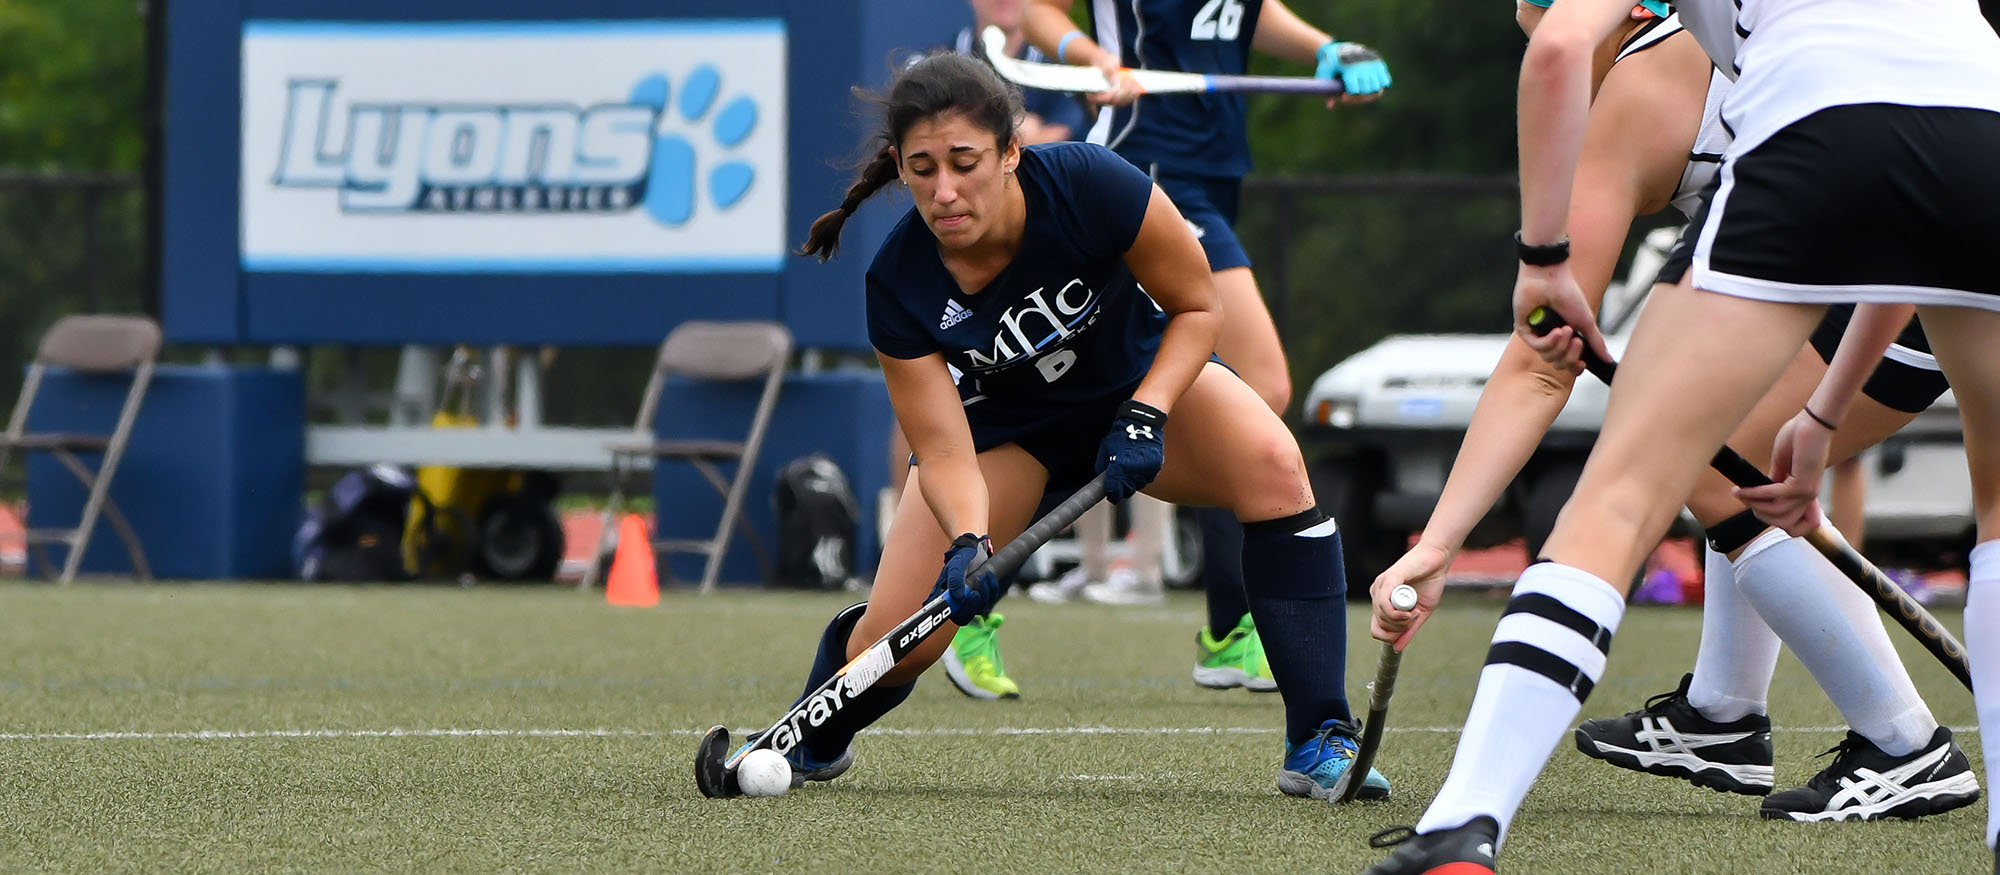 Action photo of Lyons field hockey player, Kaitlin Braz